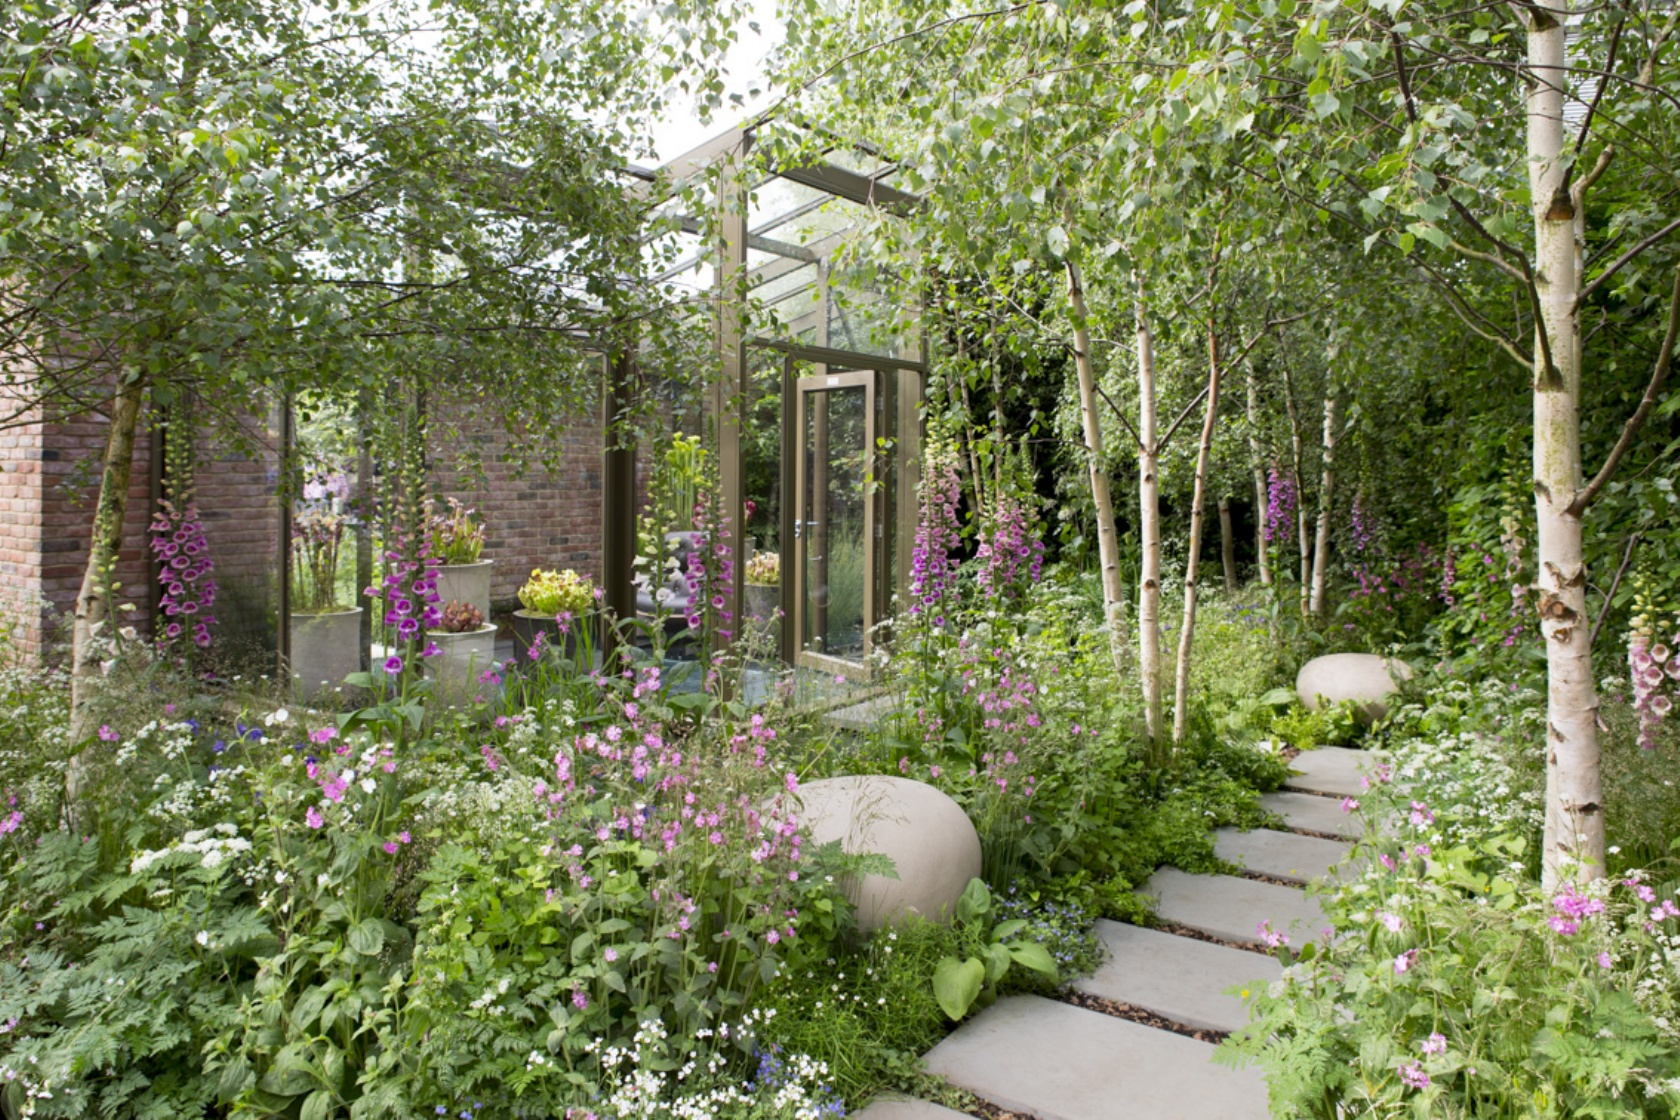 The Hartley Botanic Garden at Chelsea Flower Show